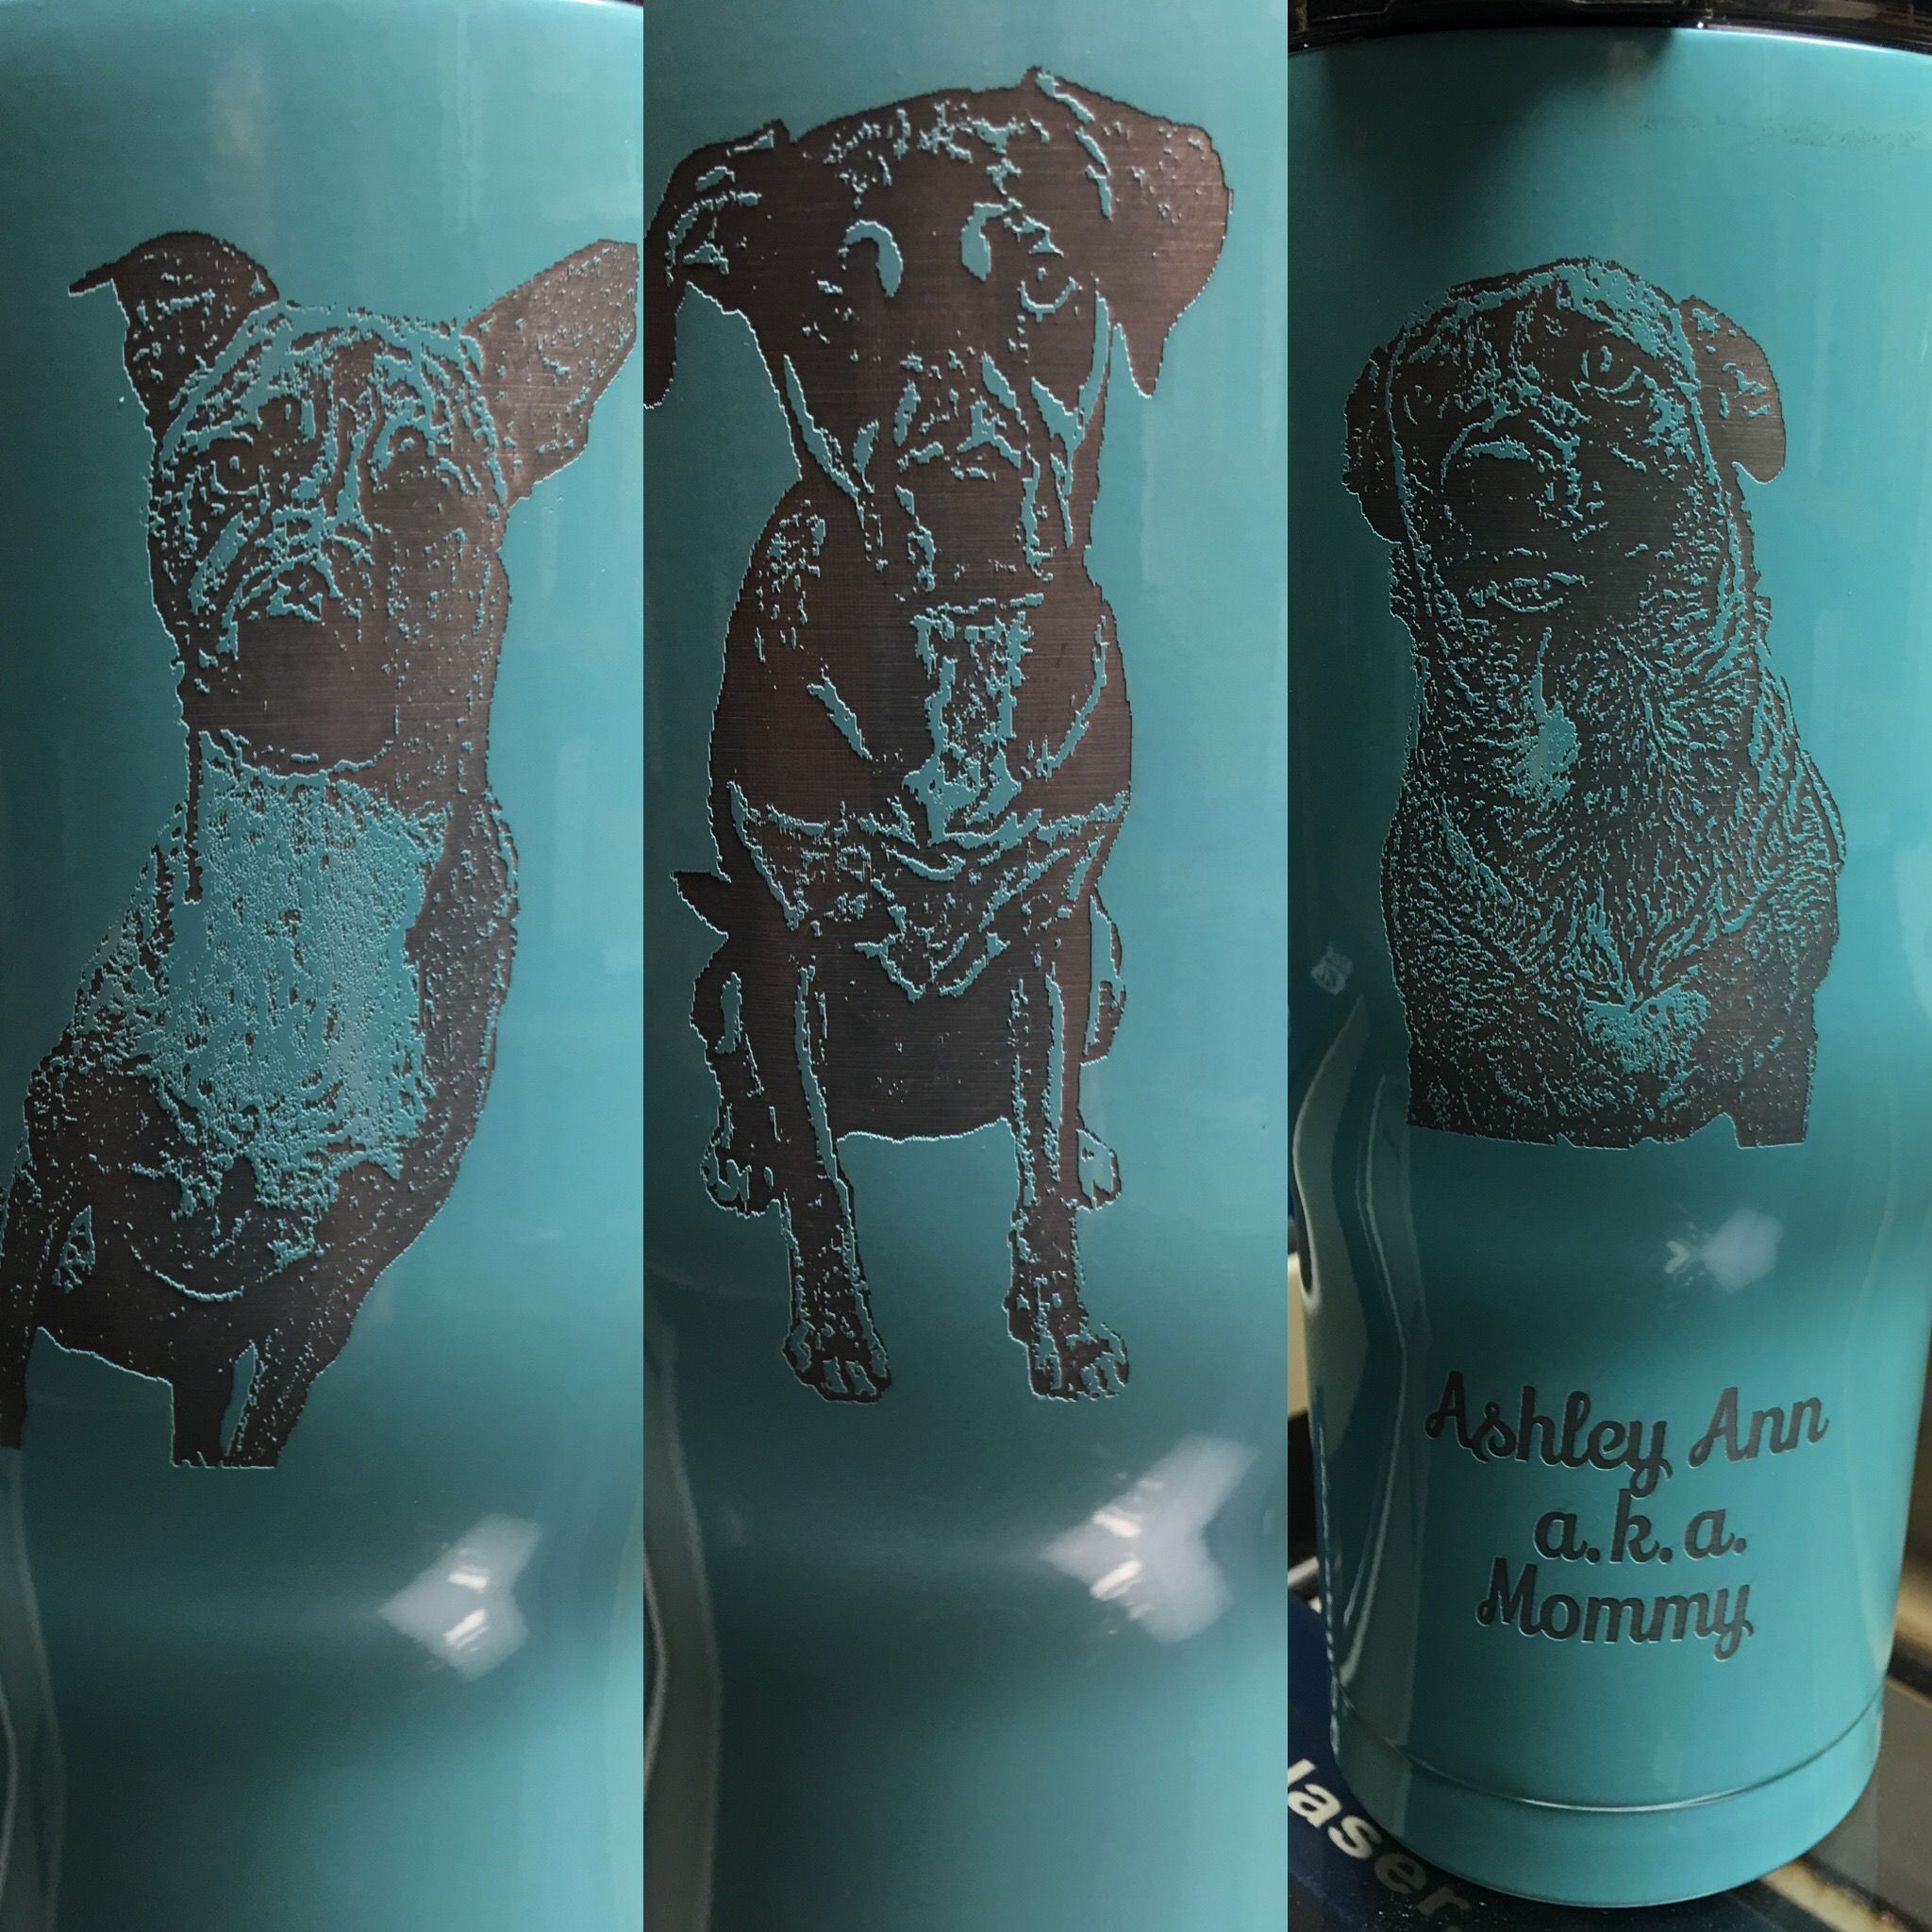 Engraving Services For Steel And Powder Coated Tumblers No Set Up Fees Quantity Discounts Laser Engraving Engraved Tumblers Engraving Services